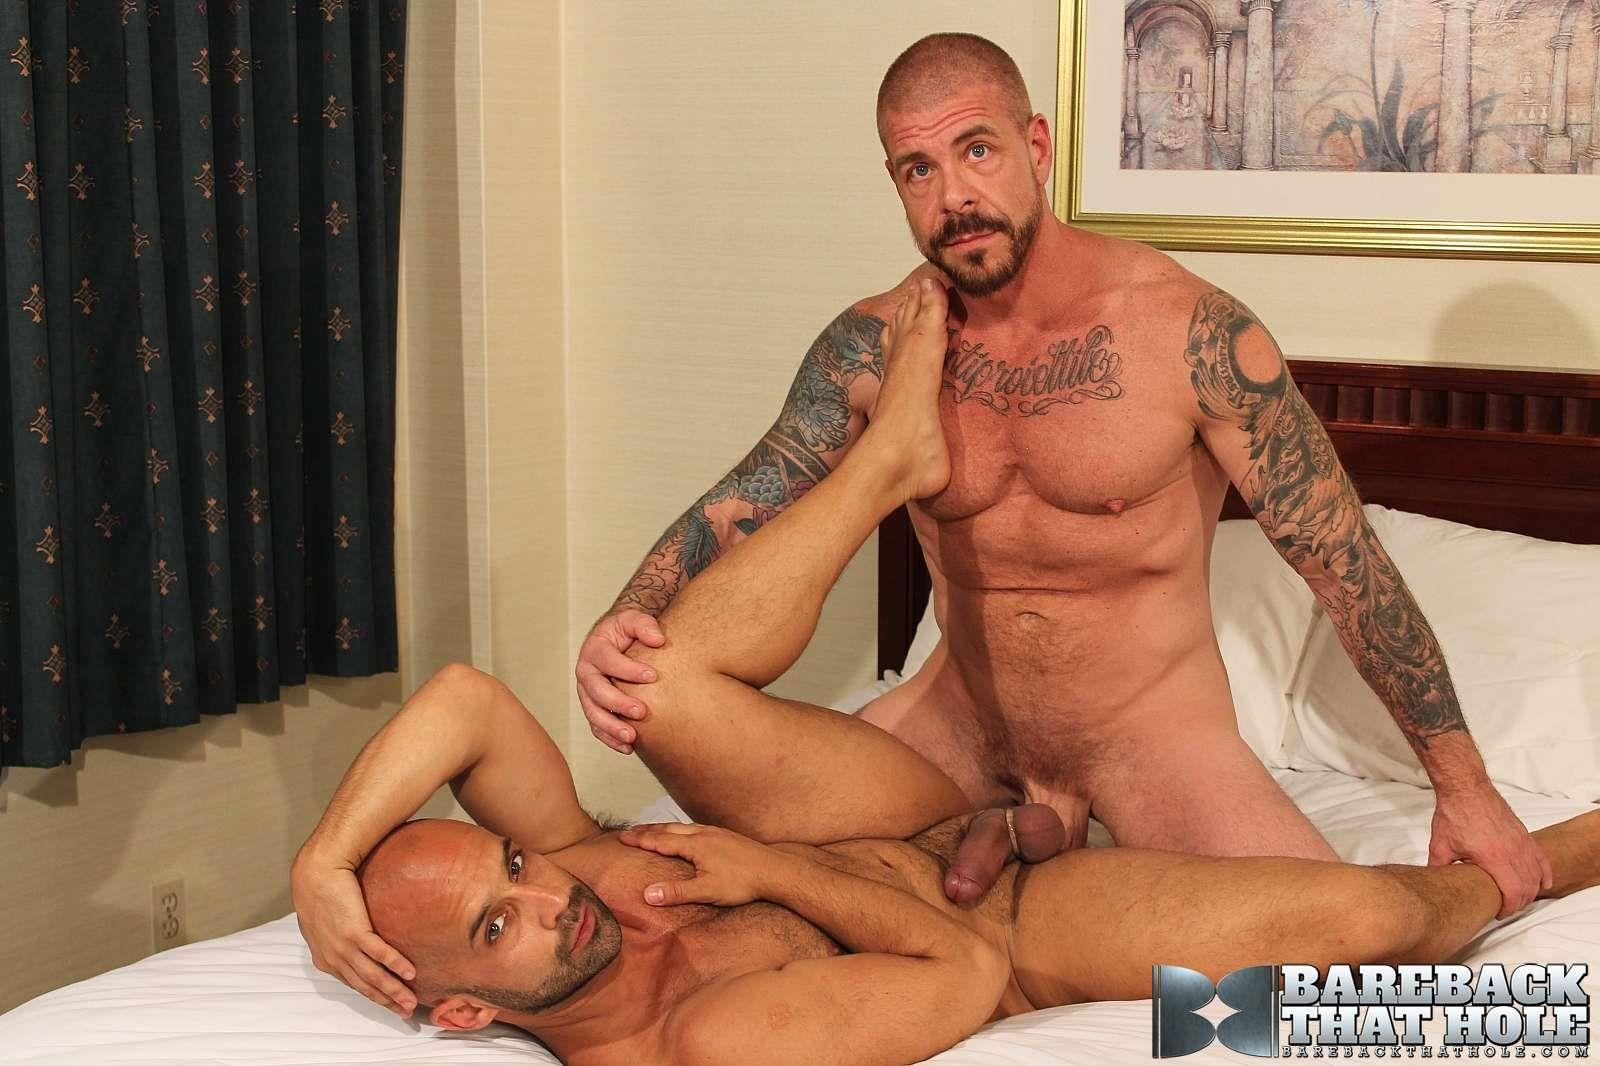 Bareback That Hole Bareback That Hole Rocco Steele and Igor Lukas Huge Cock Barebacking A Tight Ass Amateur Gay Porn 24 Rocco Steele Tearing Up A Tight Ass With His Huge Cock